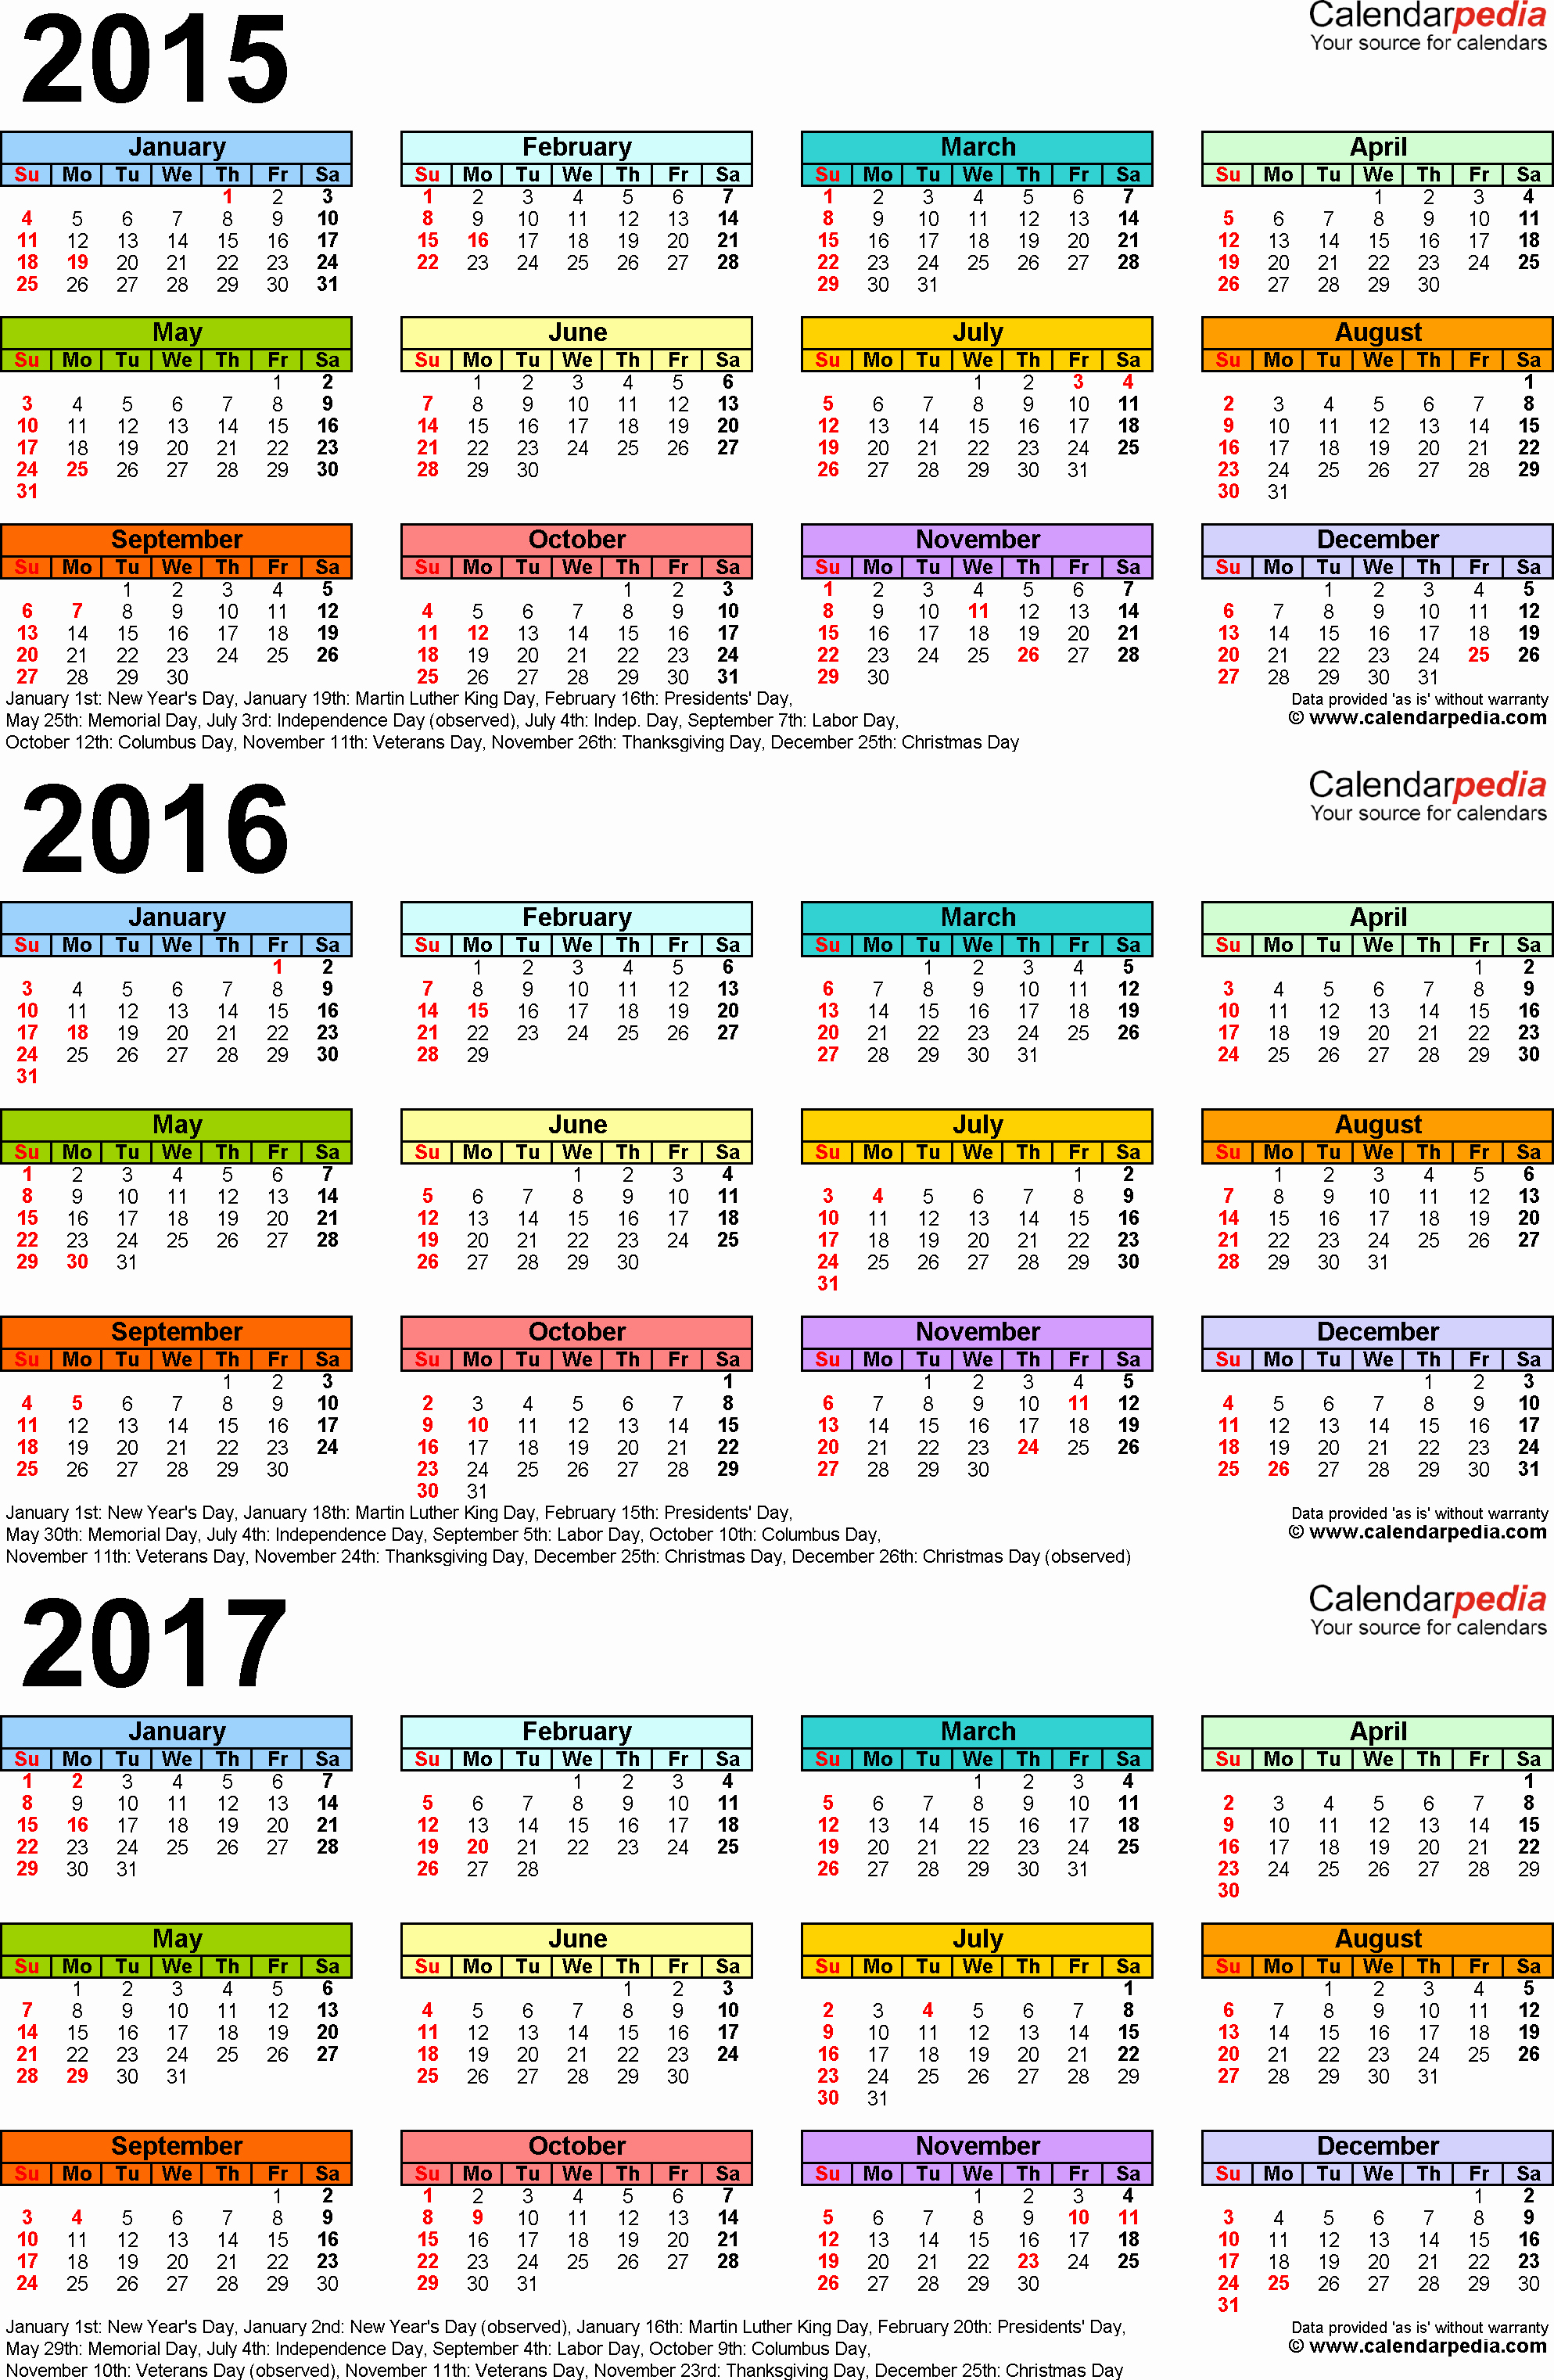 2017 Full Year Printable Calendar Awesome 2015 2016 2017 Calendar 4 Three Year Printable Pdf Calendars